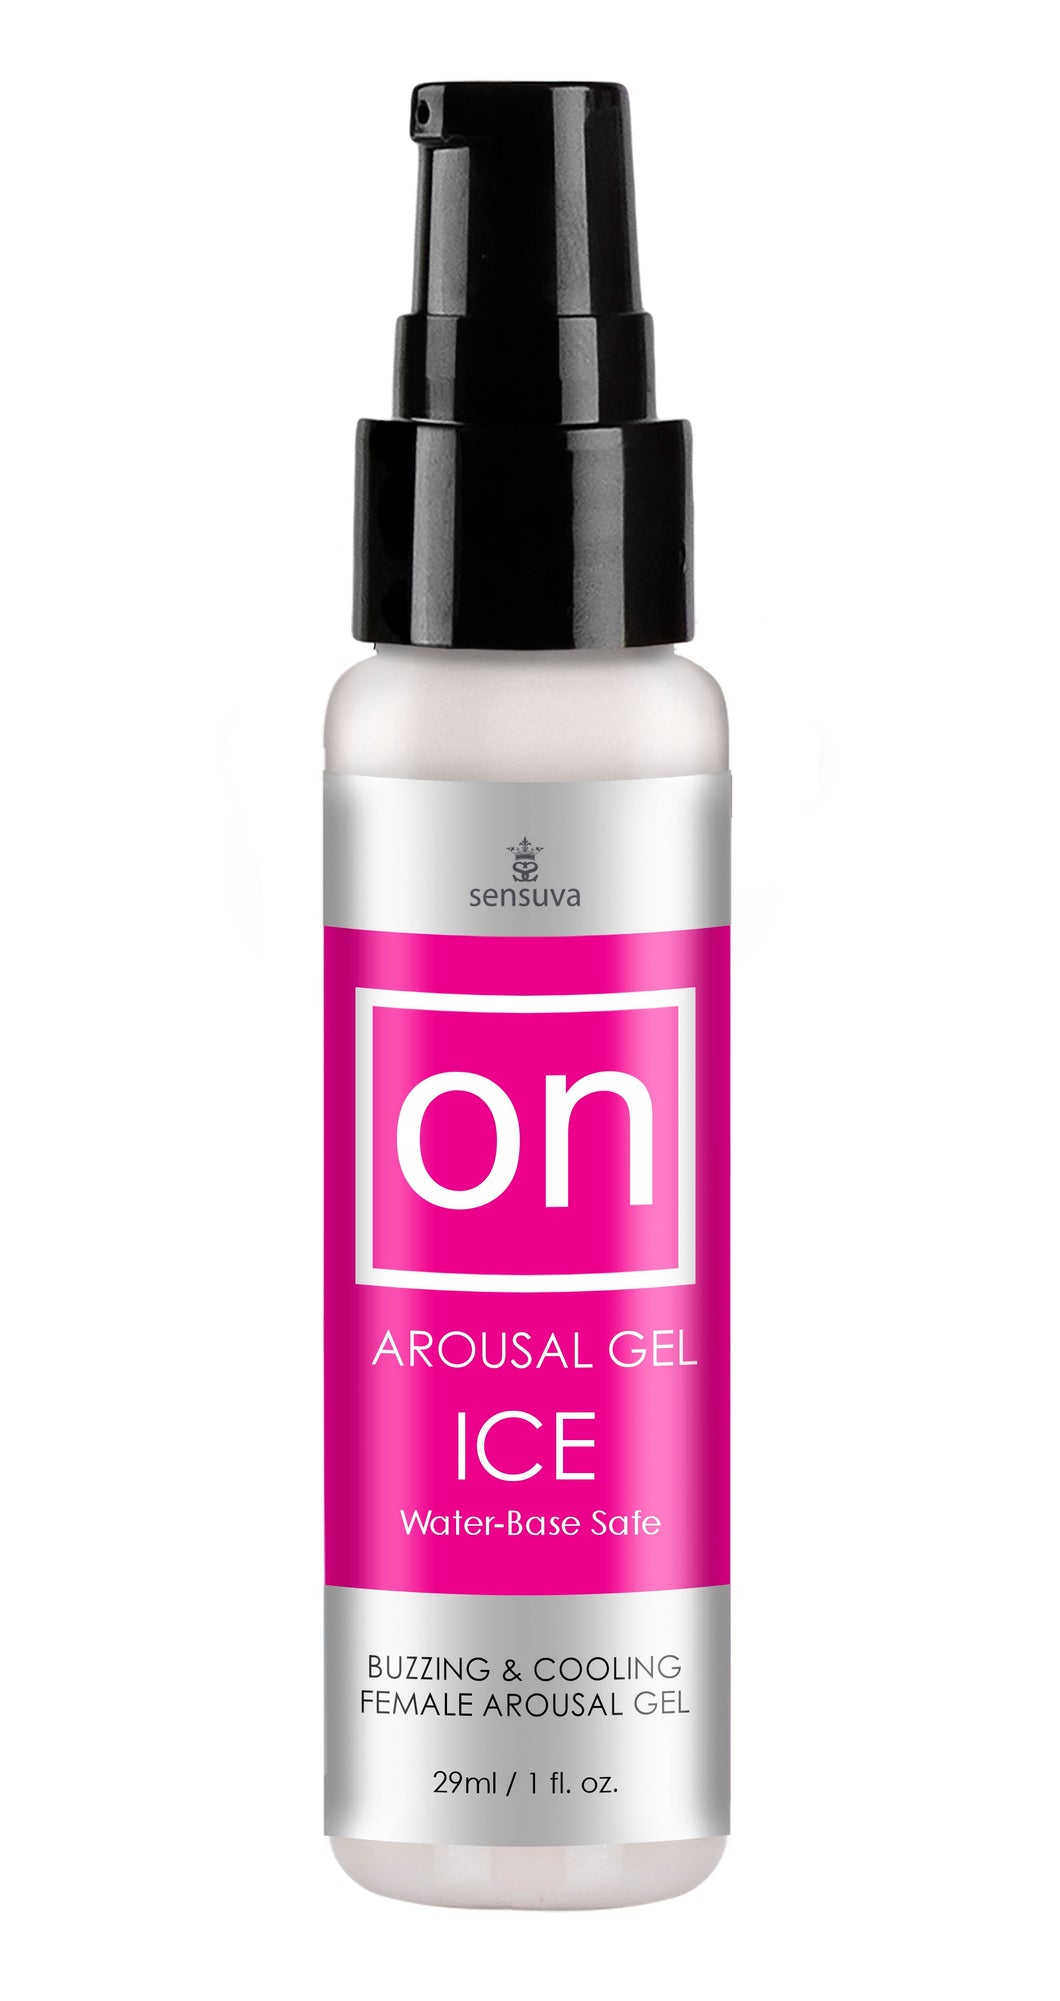 On Arousal Gel - Ice - 1 Fl. Oz. Bottle - My sheree and More